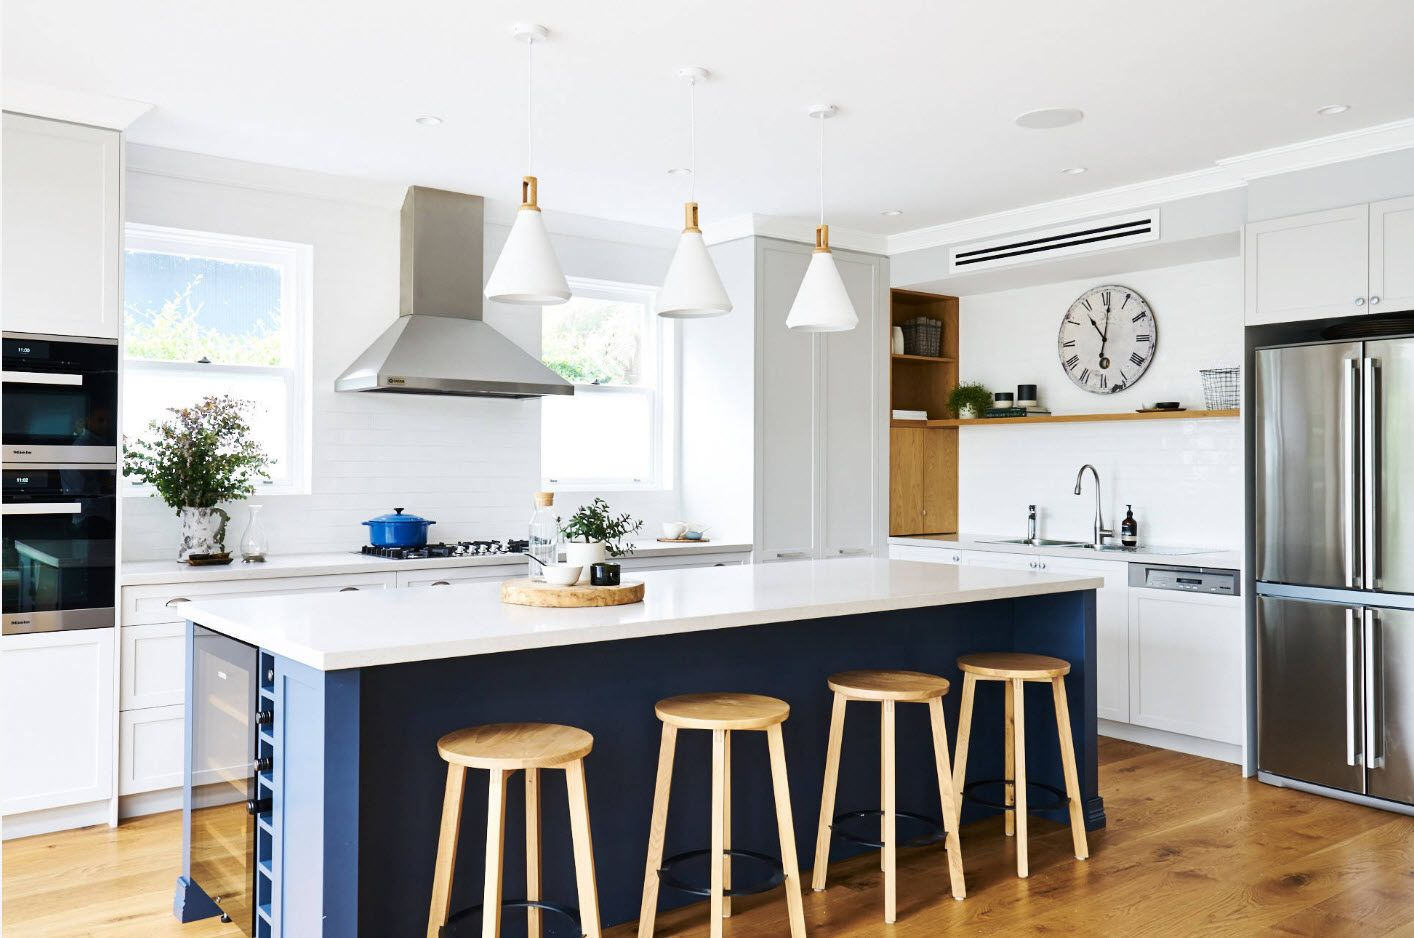 Deep blue shade for the kitchen island